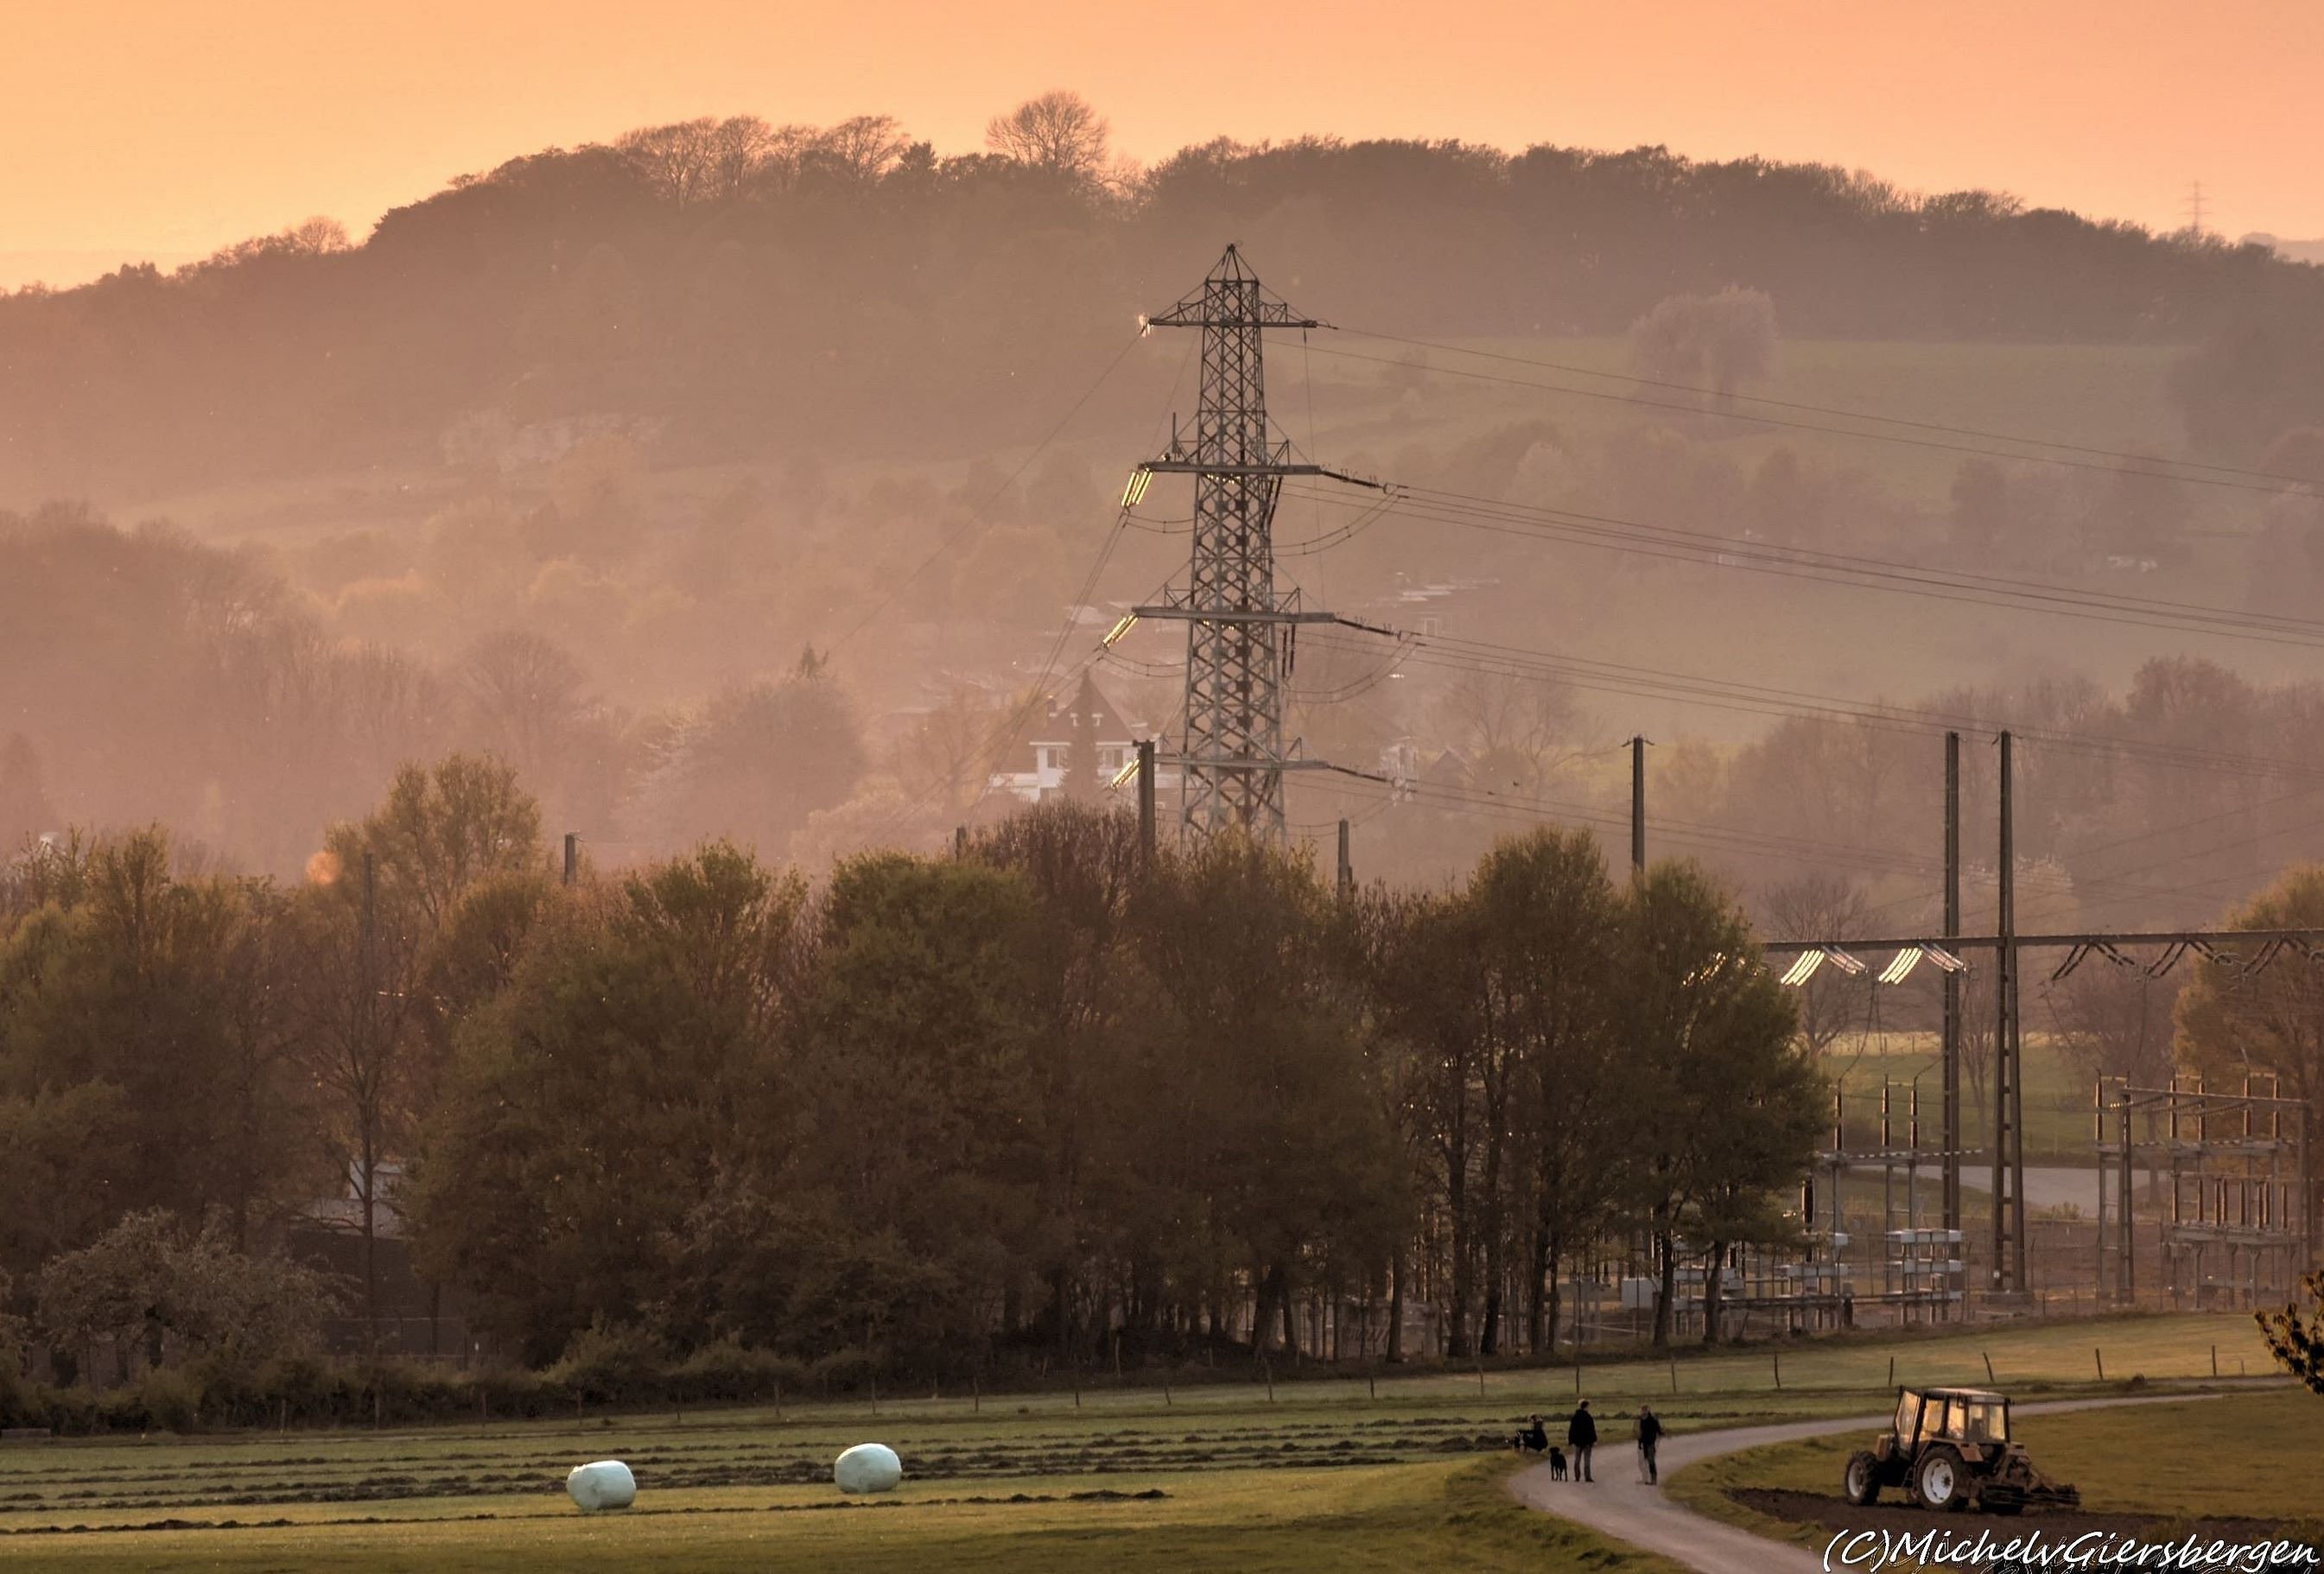 Limburg20 157 (3100x2067)And1more_Balanced (2700x1838).jpg